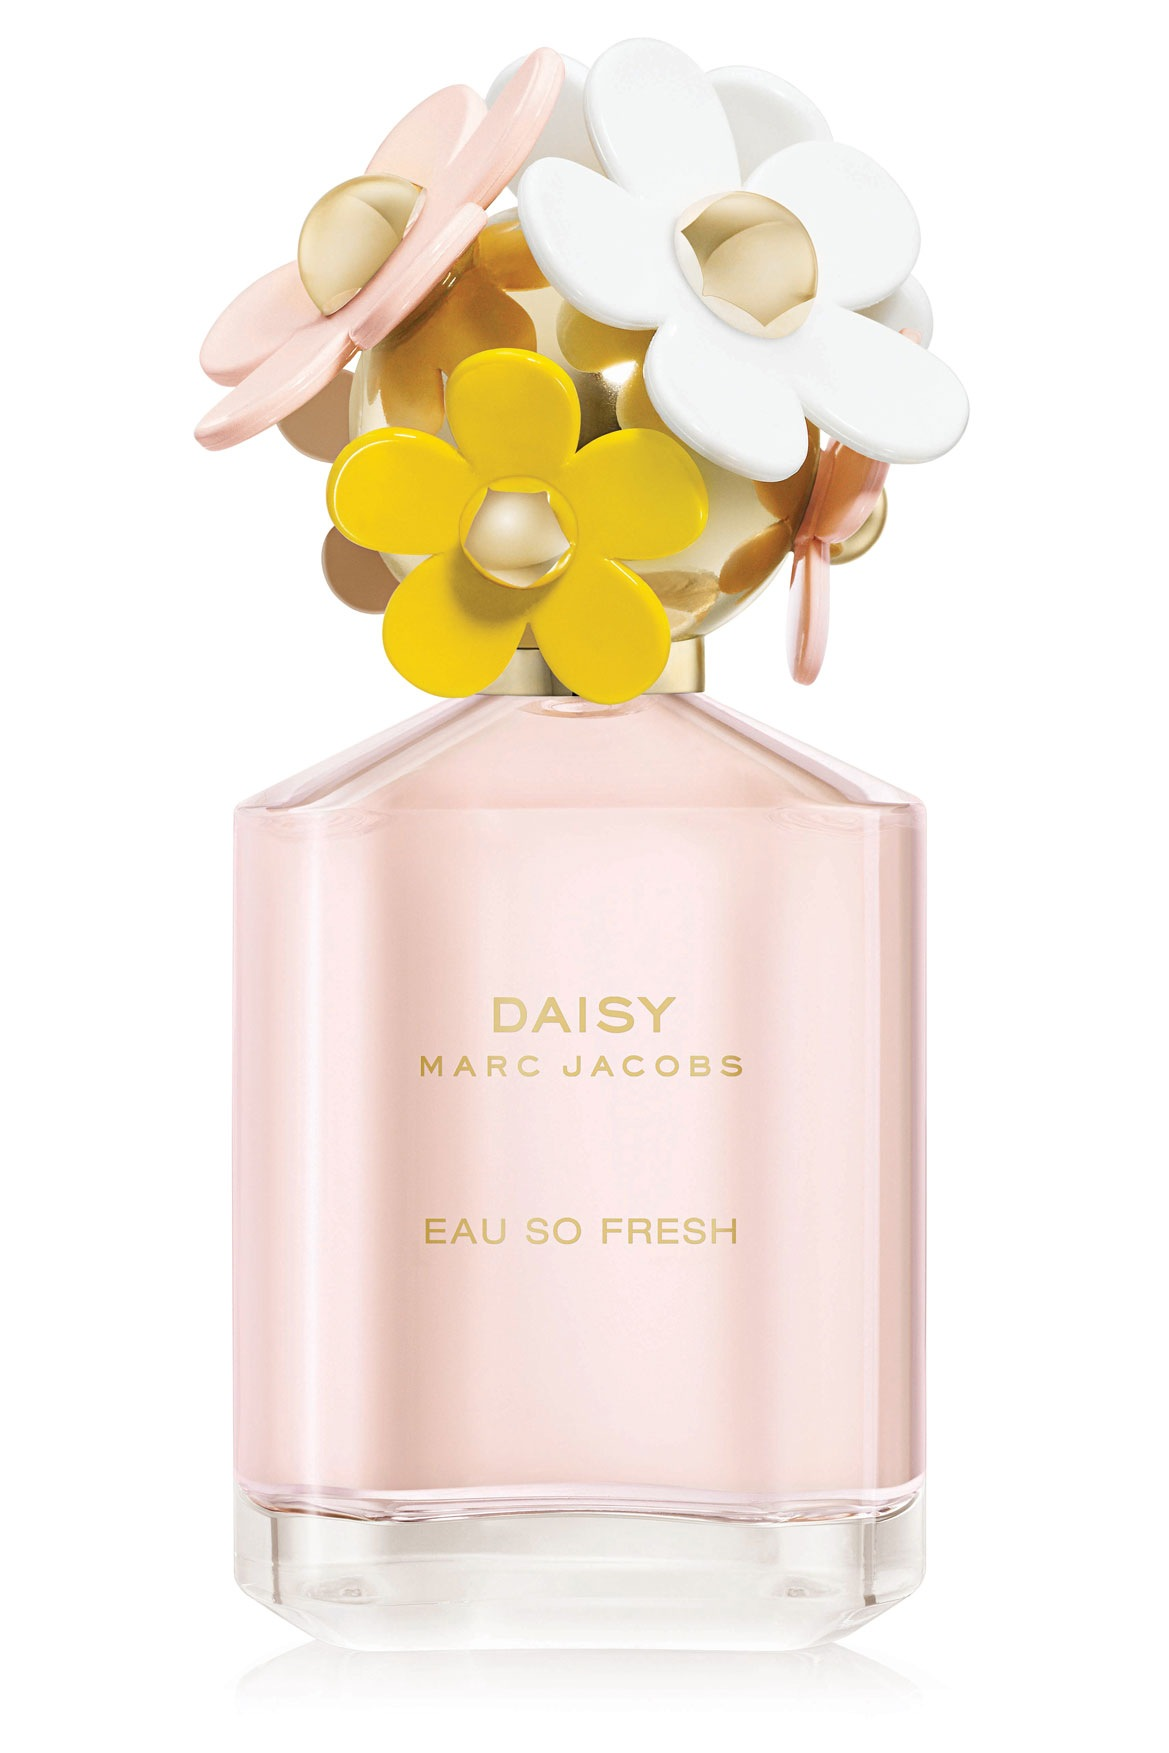 Marc jacobs daisy eau so fresh edt myer online izmirmasajfo